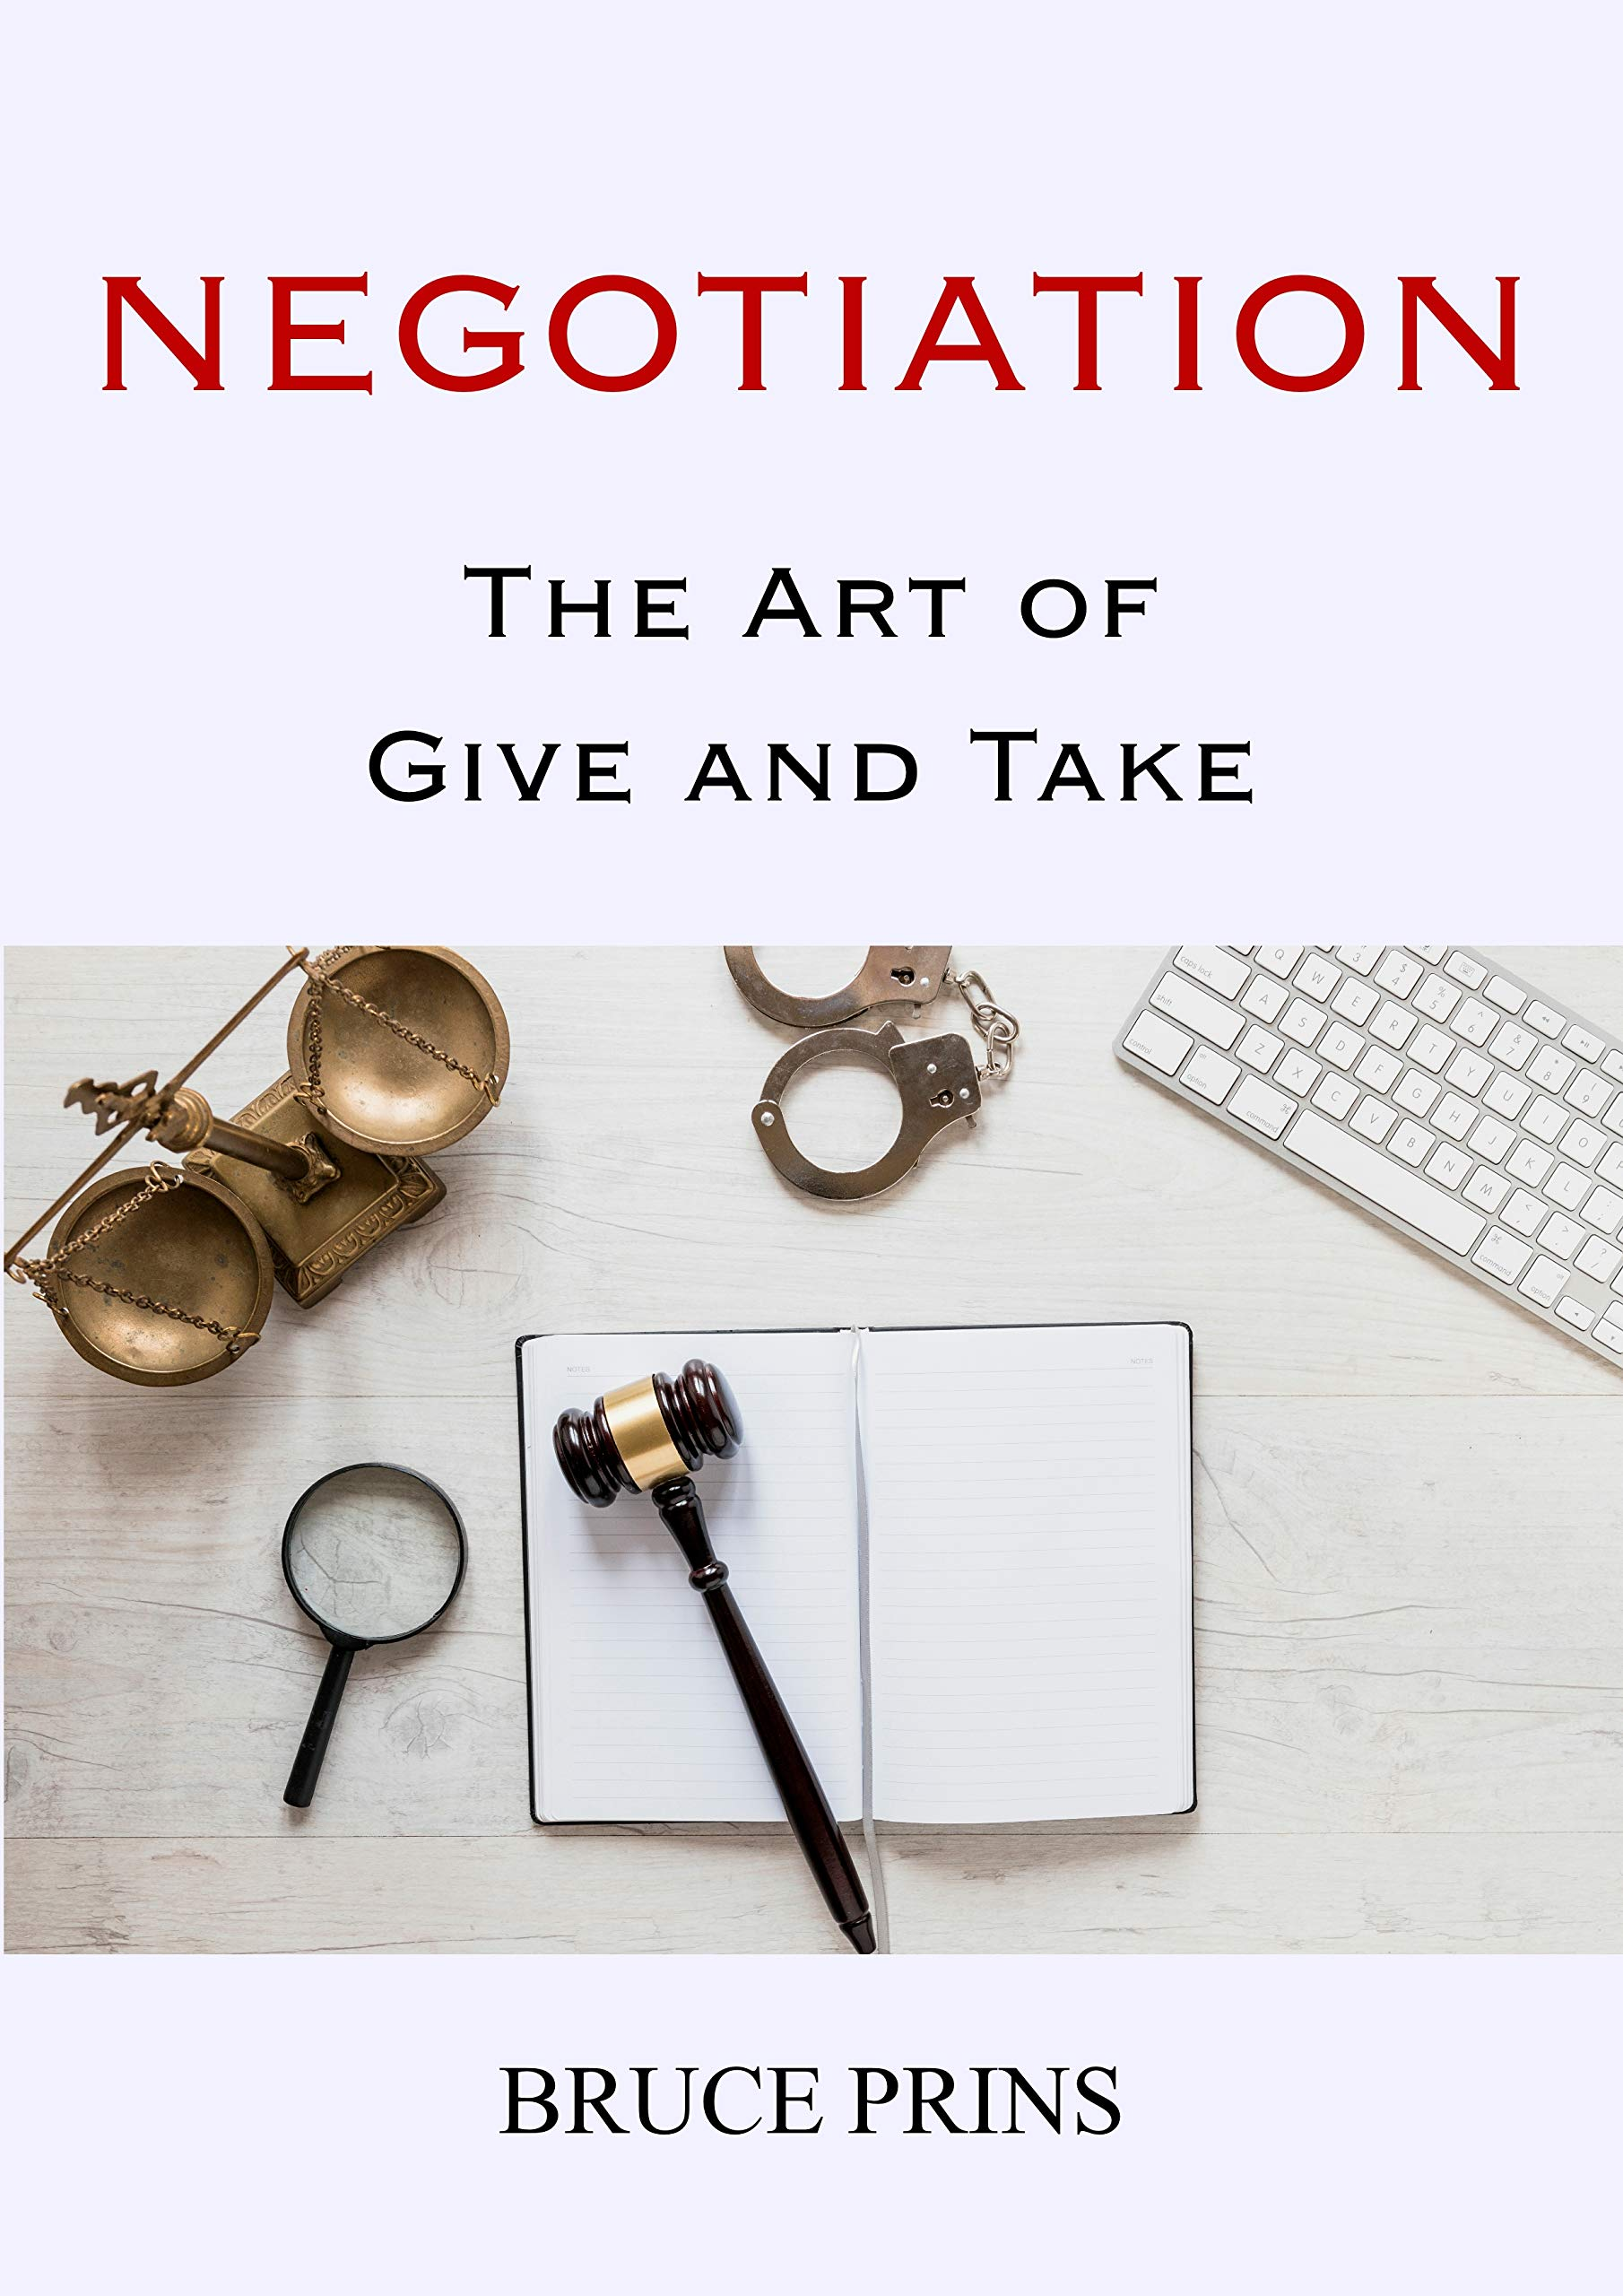 Negotiation: The art of give and take.